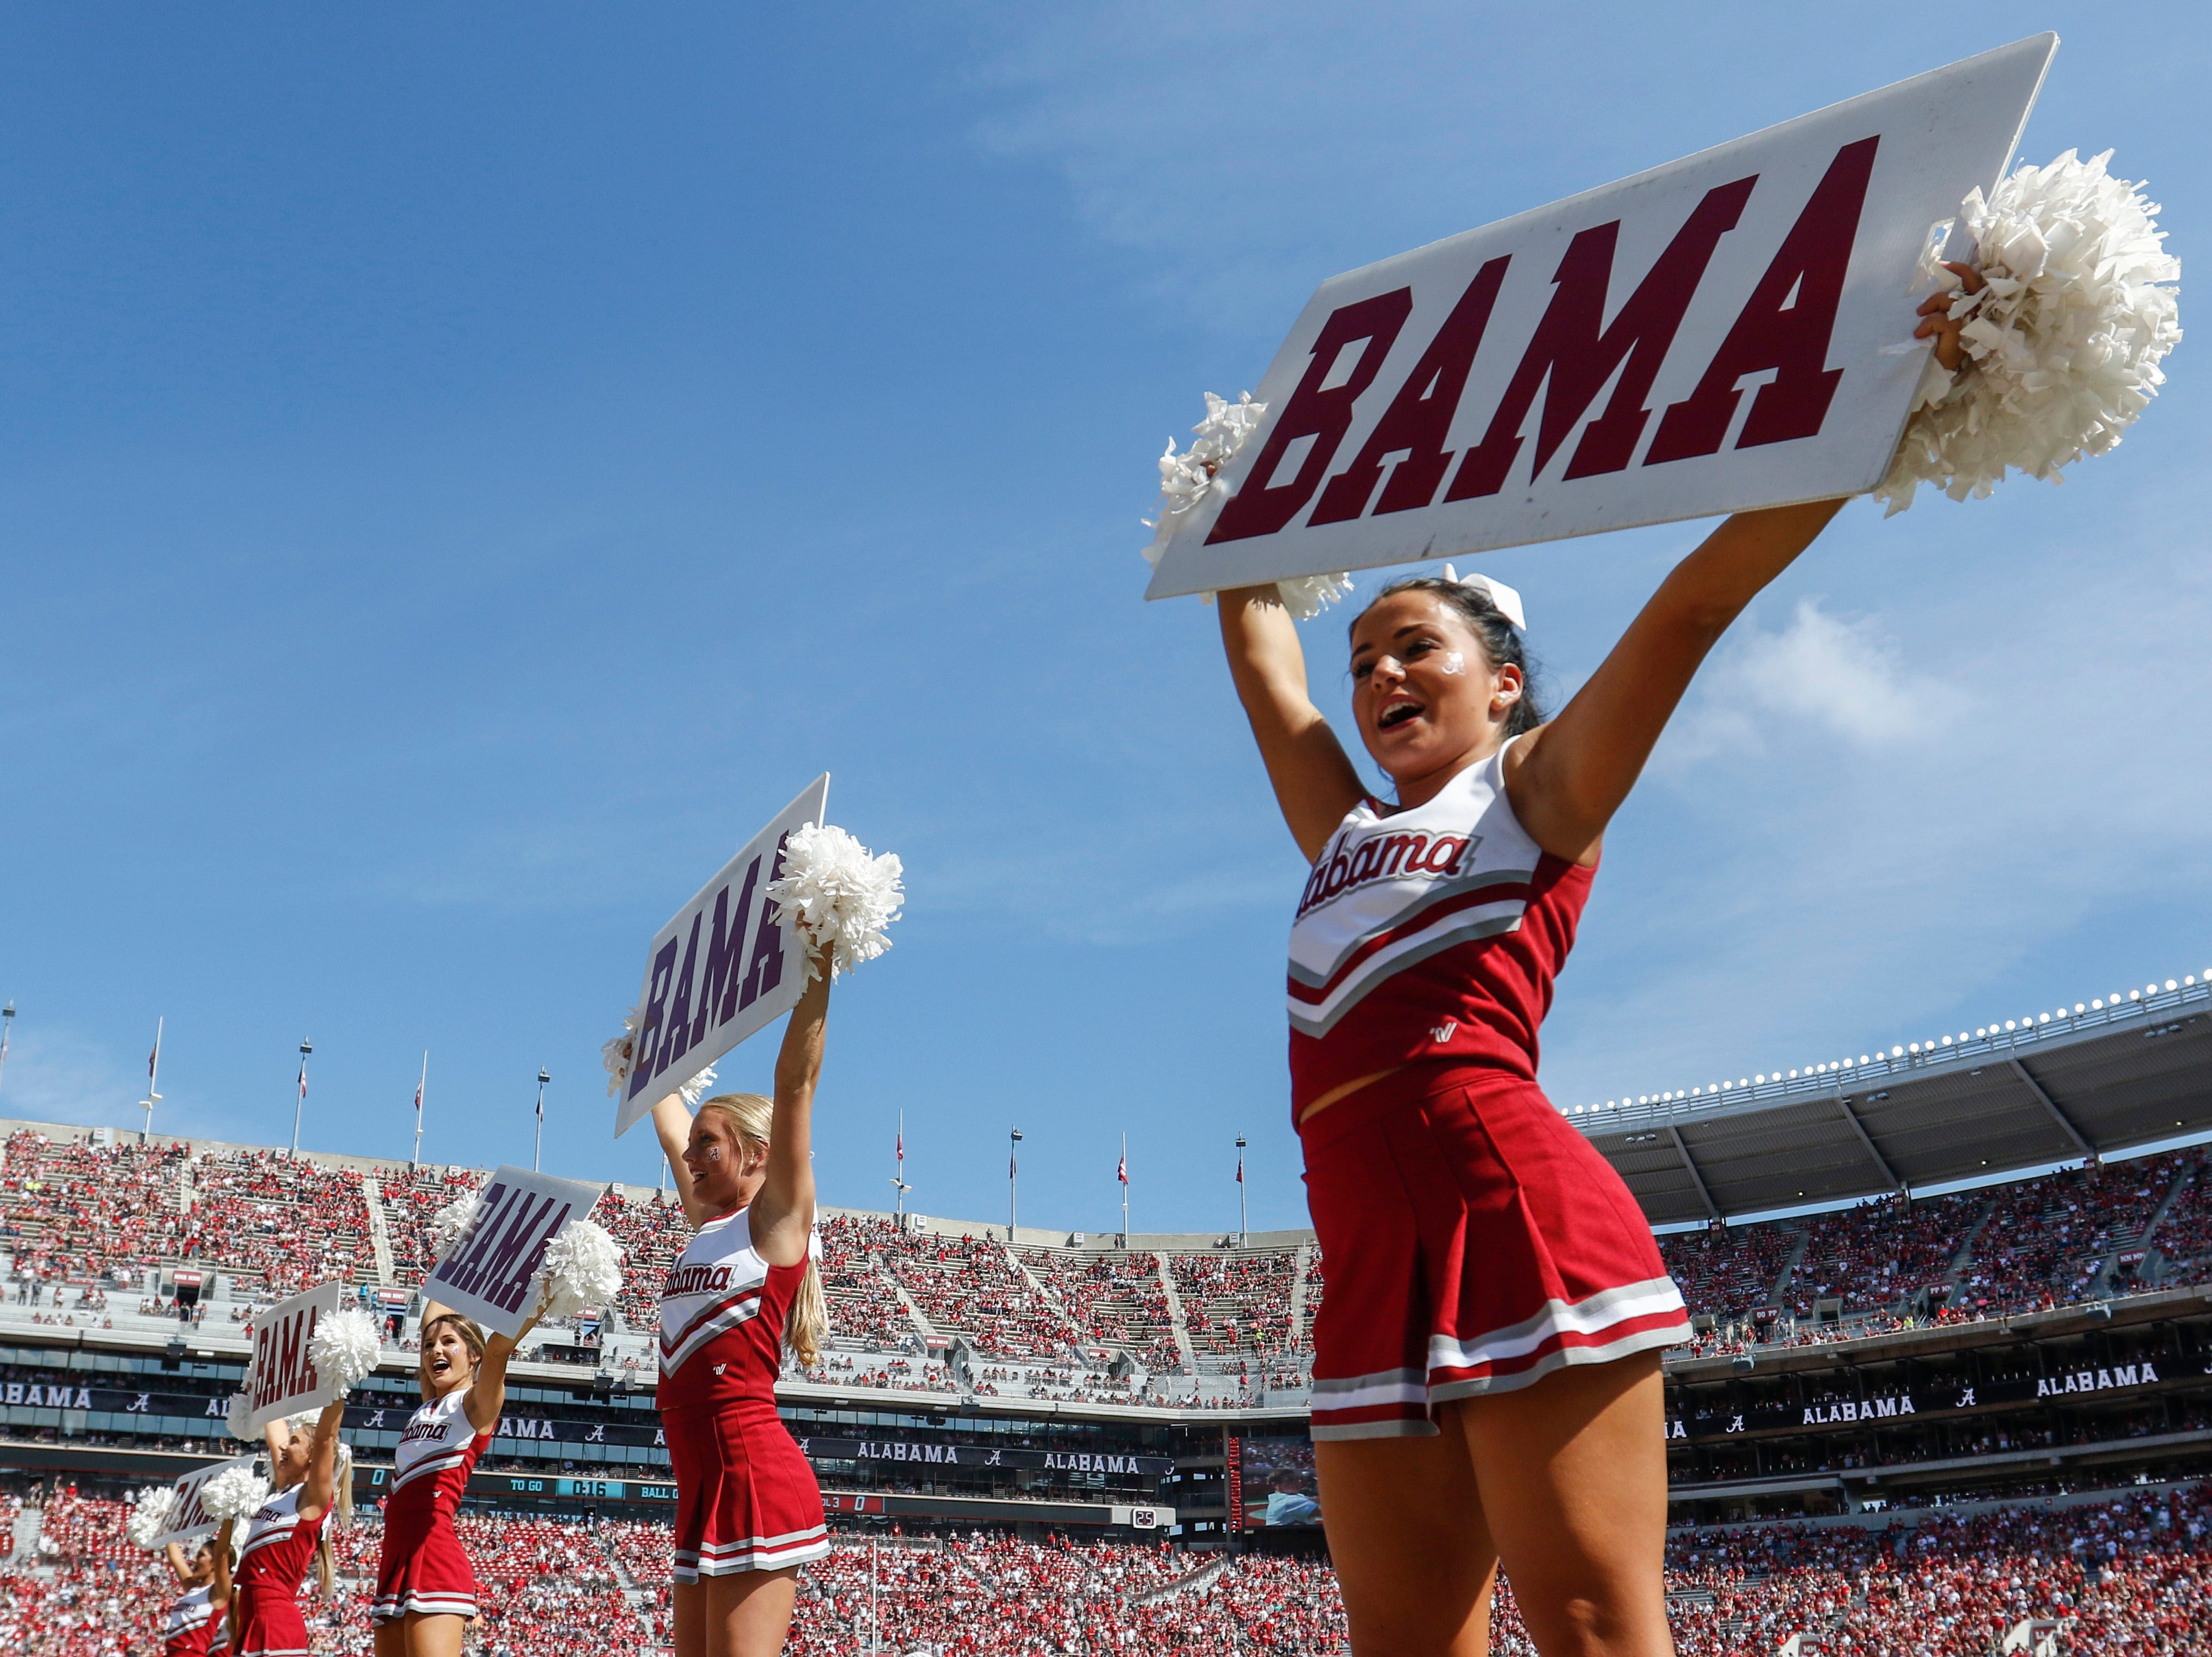 Alabama cheerleaders lead fans in a cheer before the first half of an NCAA college football game between Alabama and Louisiana-Lafayette, Saturday, Sept. 29, 2018, in Tuscaloosa, Ala. (AP Photo/Butch Dill)